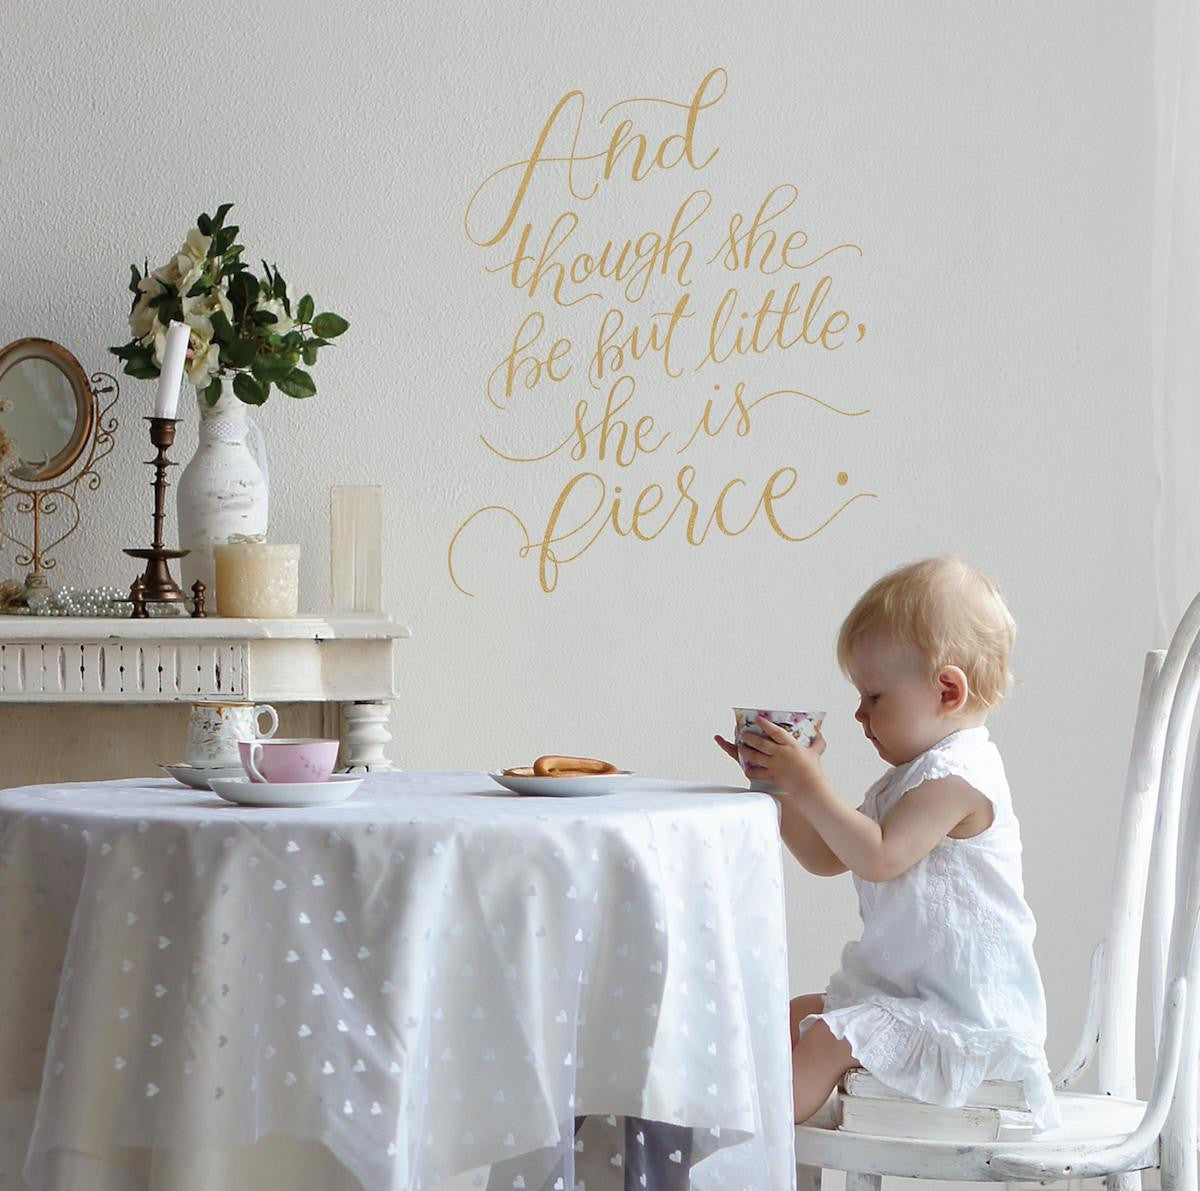 Fierce Wall Decal  Though She Be But Little She is Fierce  Typography Quote & Wall Dressed Up Wall Decals Fabric Wall Decal Stickers Peel and Stick